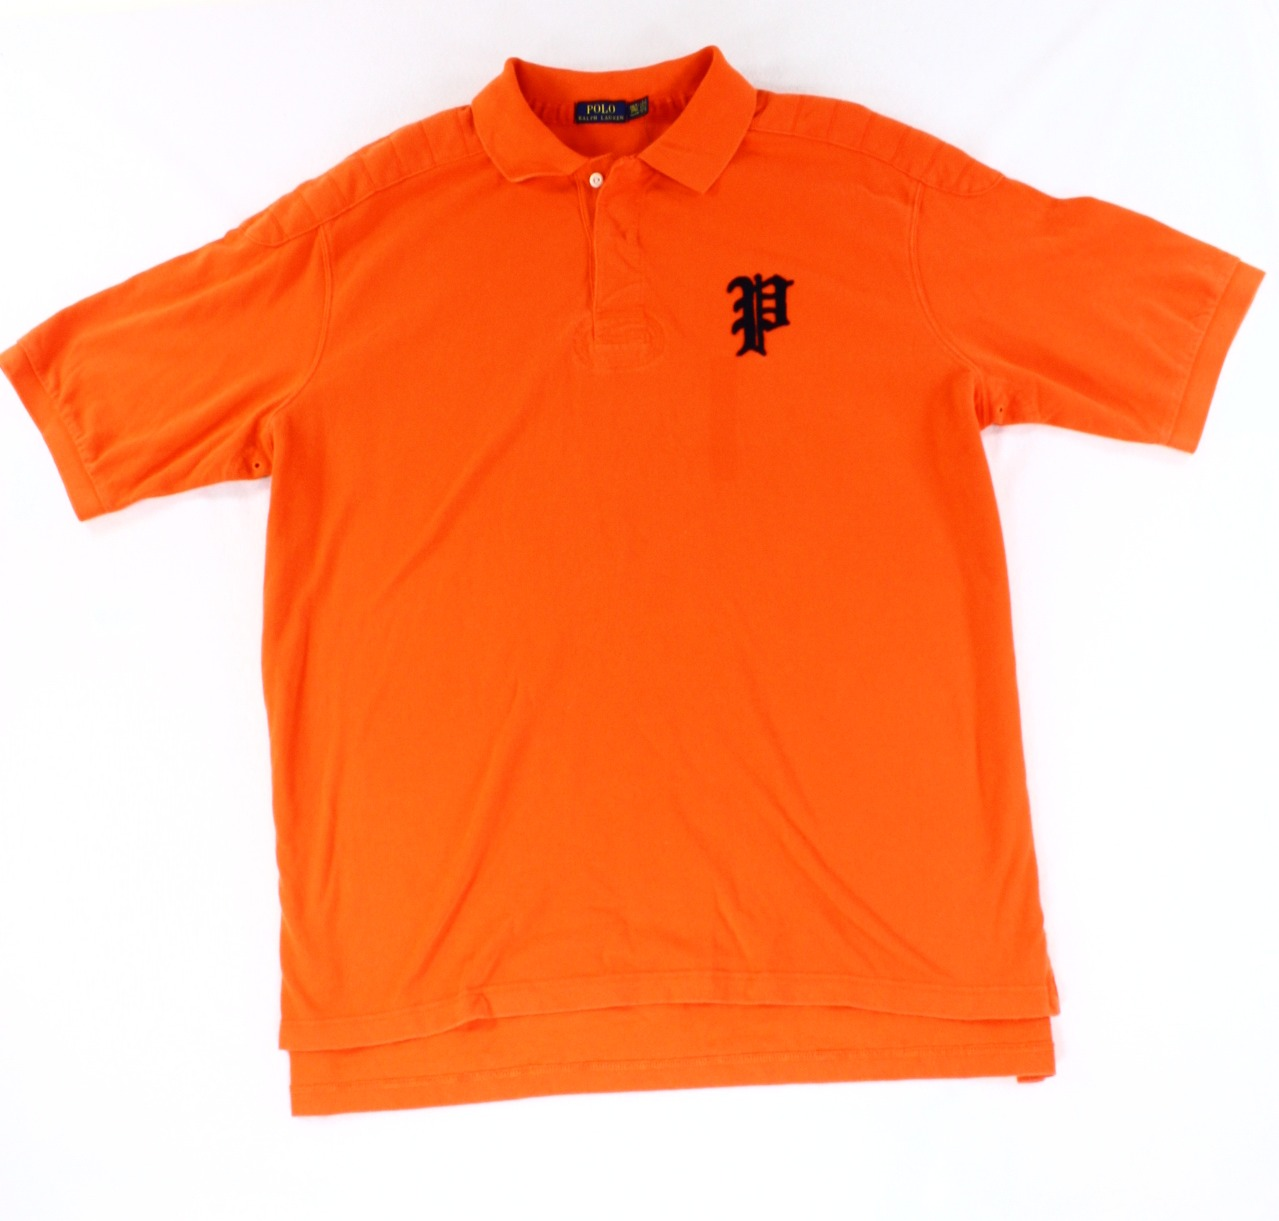 Polo ralph lauren new bright orange mens us size 2xlt polo for Van heusen studio shirts big and tall